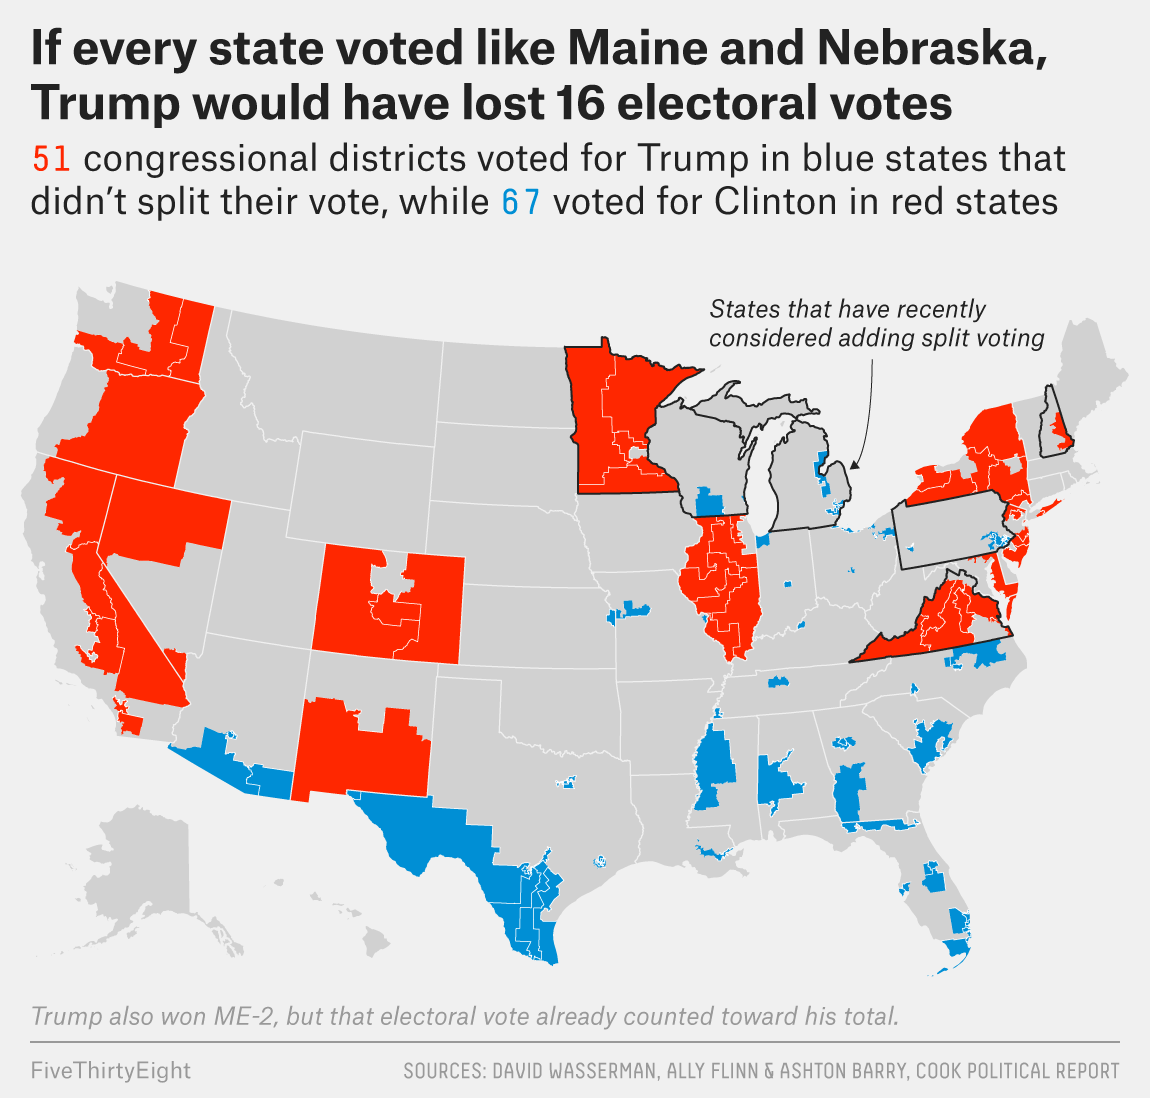 Under A New System, Clinton Could Have Won The Popular Vote By 5 Points And Still Lost